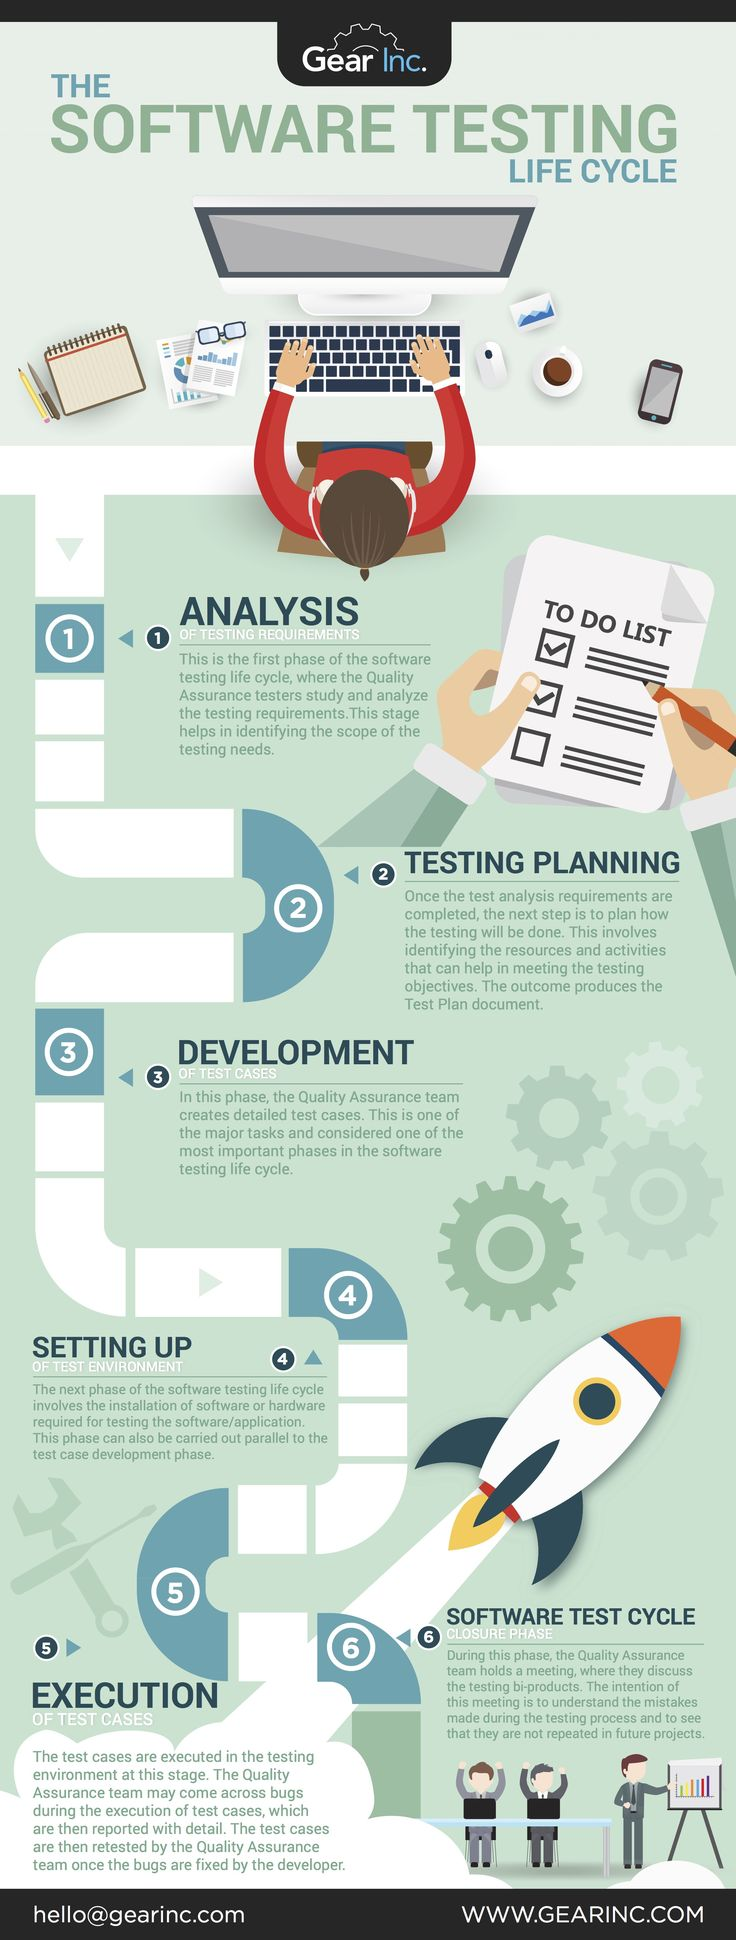 Software Testing, Life Cycle, IT, QA, Software Development, App Development. Click VISIT to read FULL ARTICLE